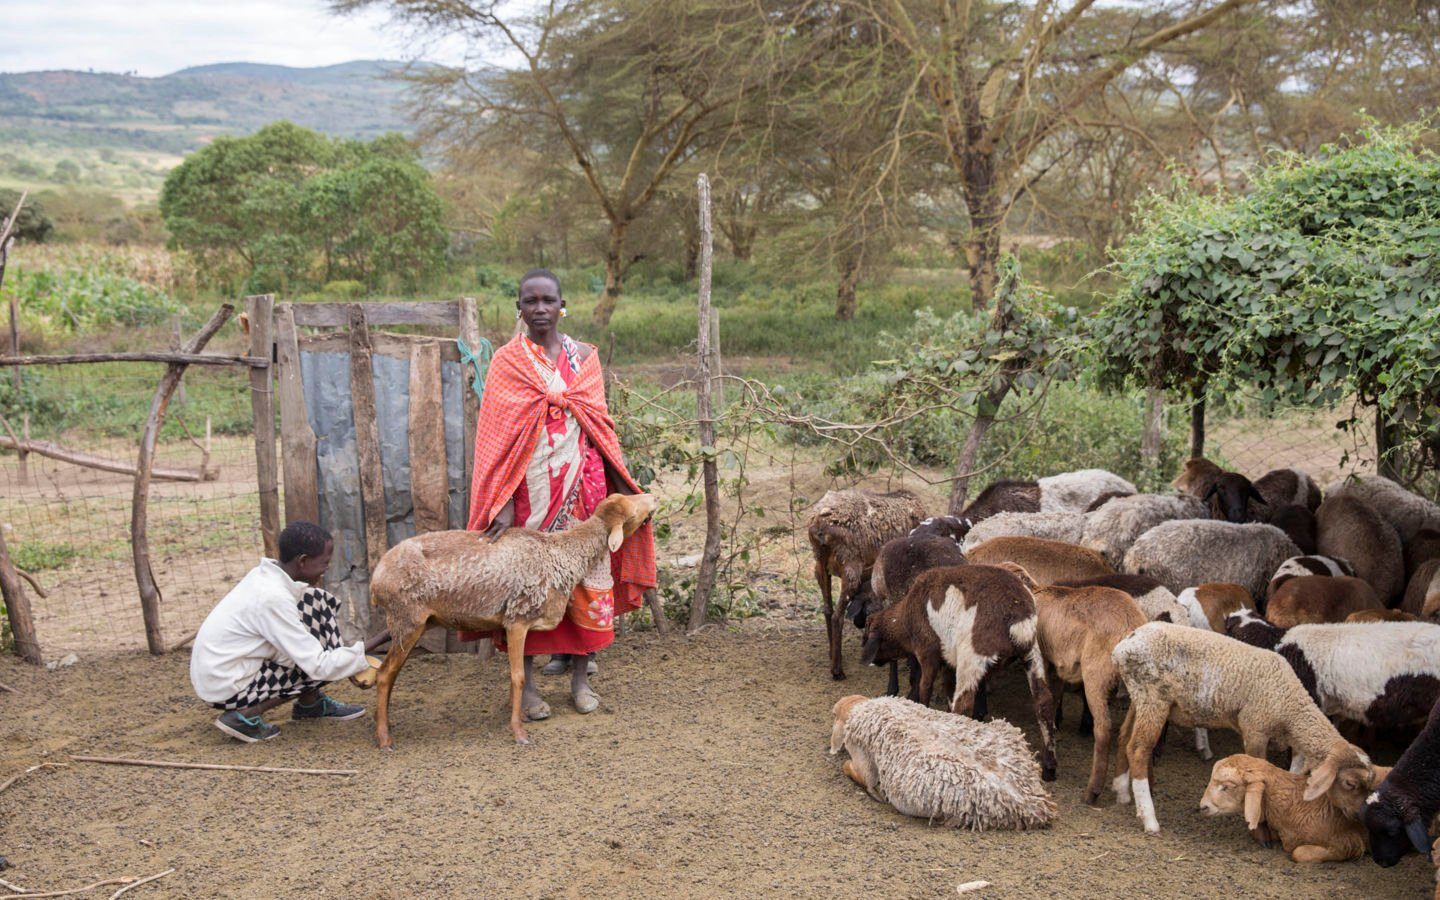 Maasai Woman cares for livestock at her home in Enariboo, Kenya